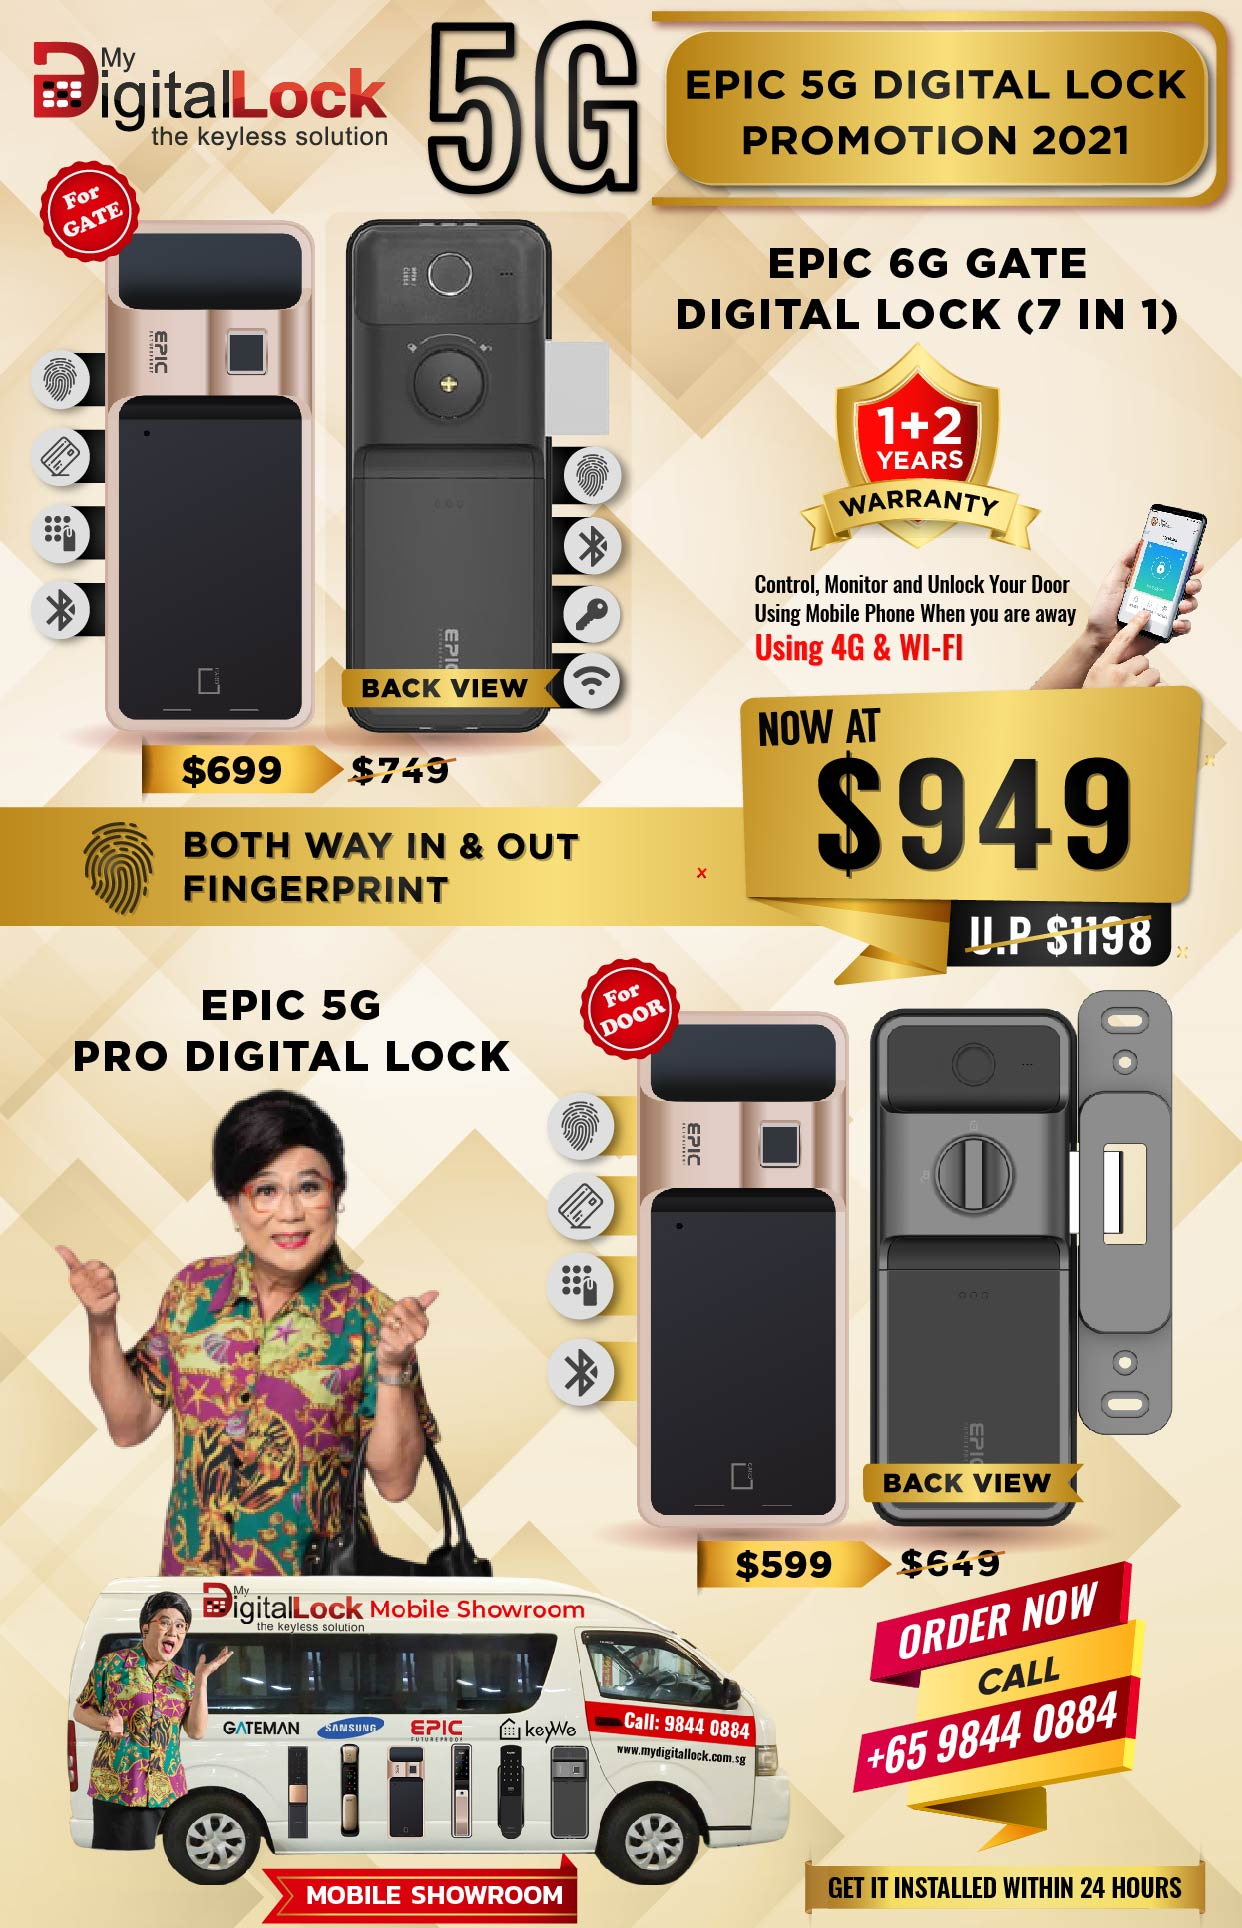 Epic 5g Digital Lock Promotion 2021